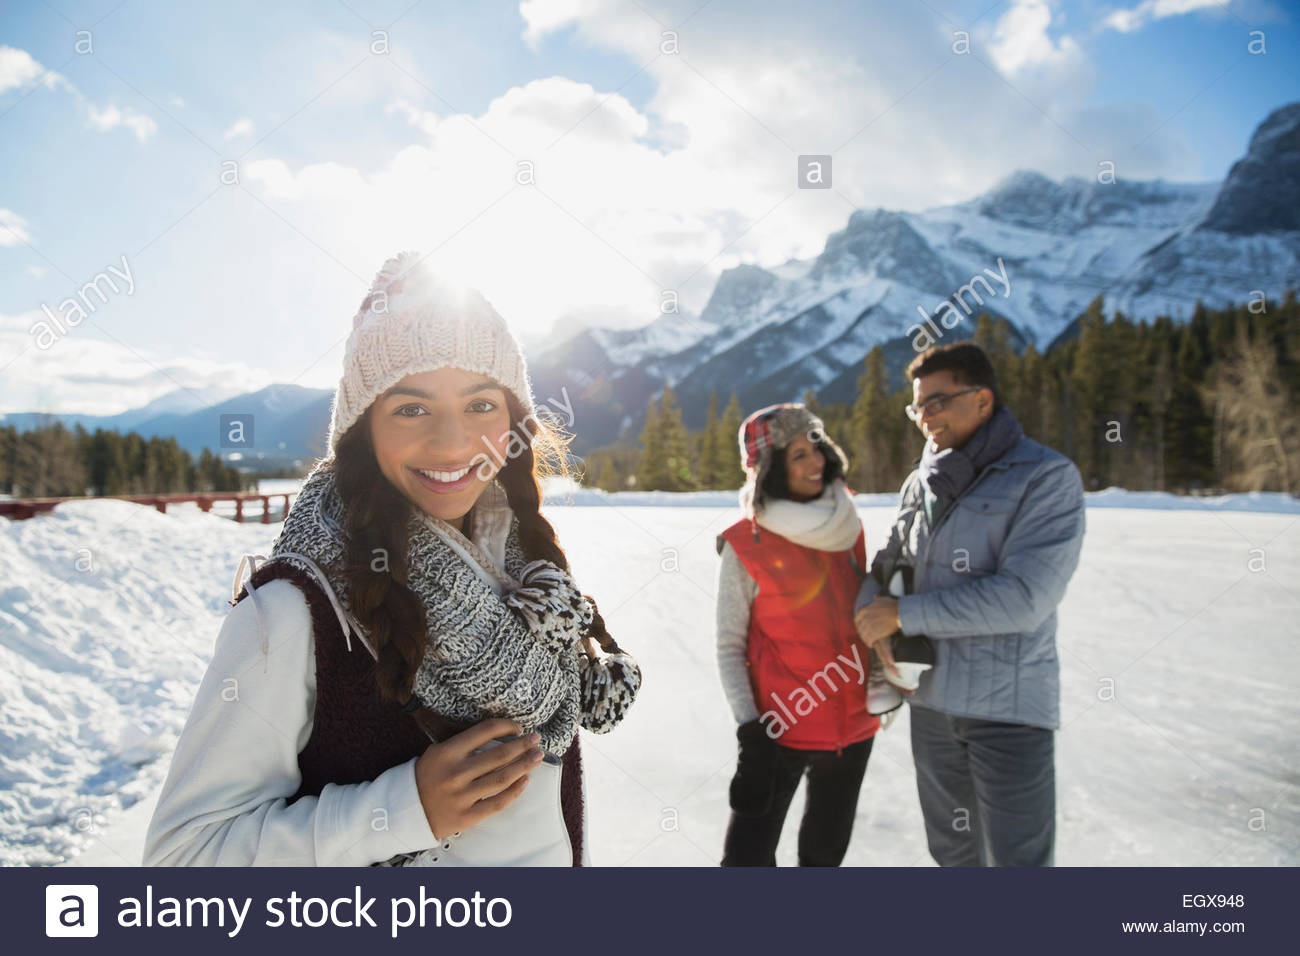 Portrait of smiling teenage girl below snowy mountain - Stock Image